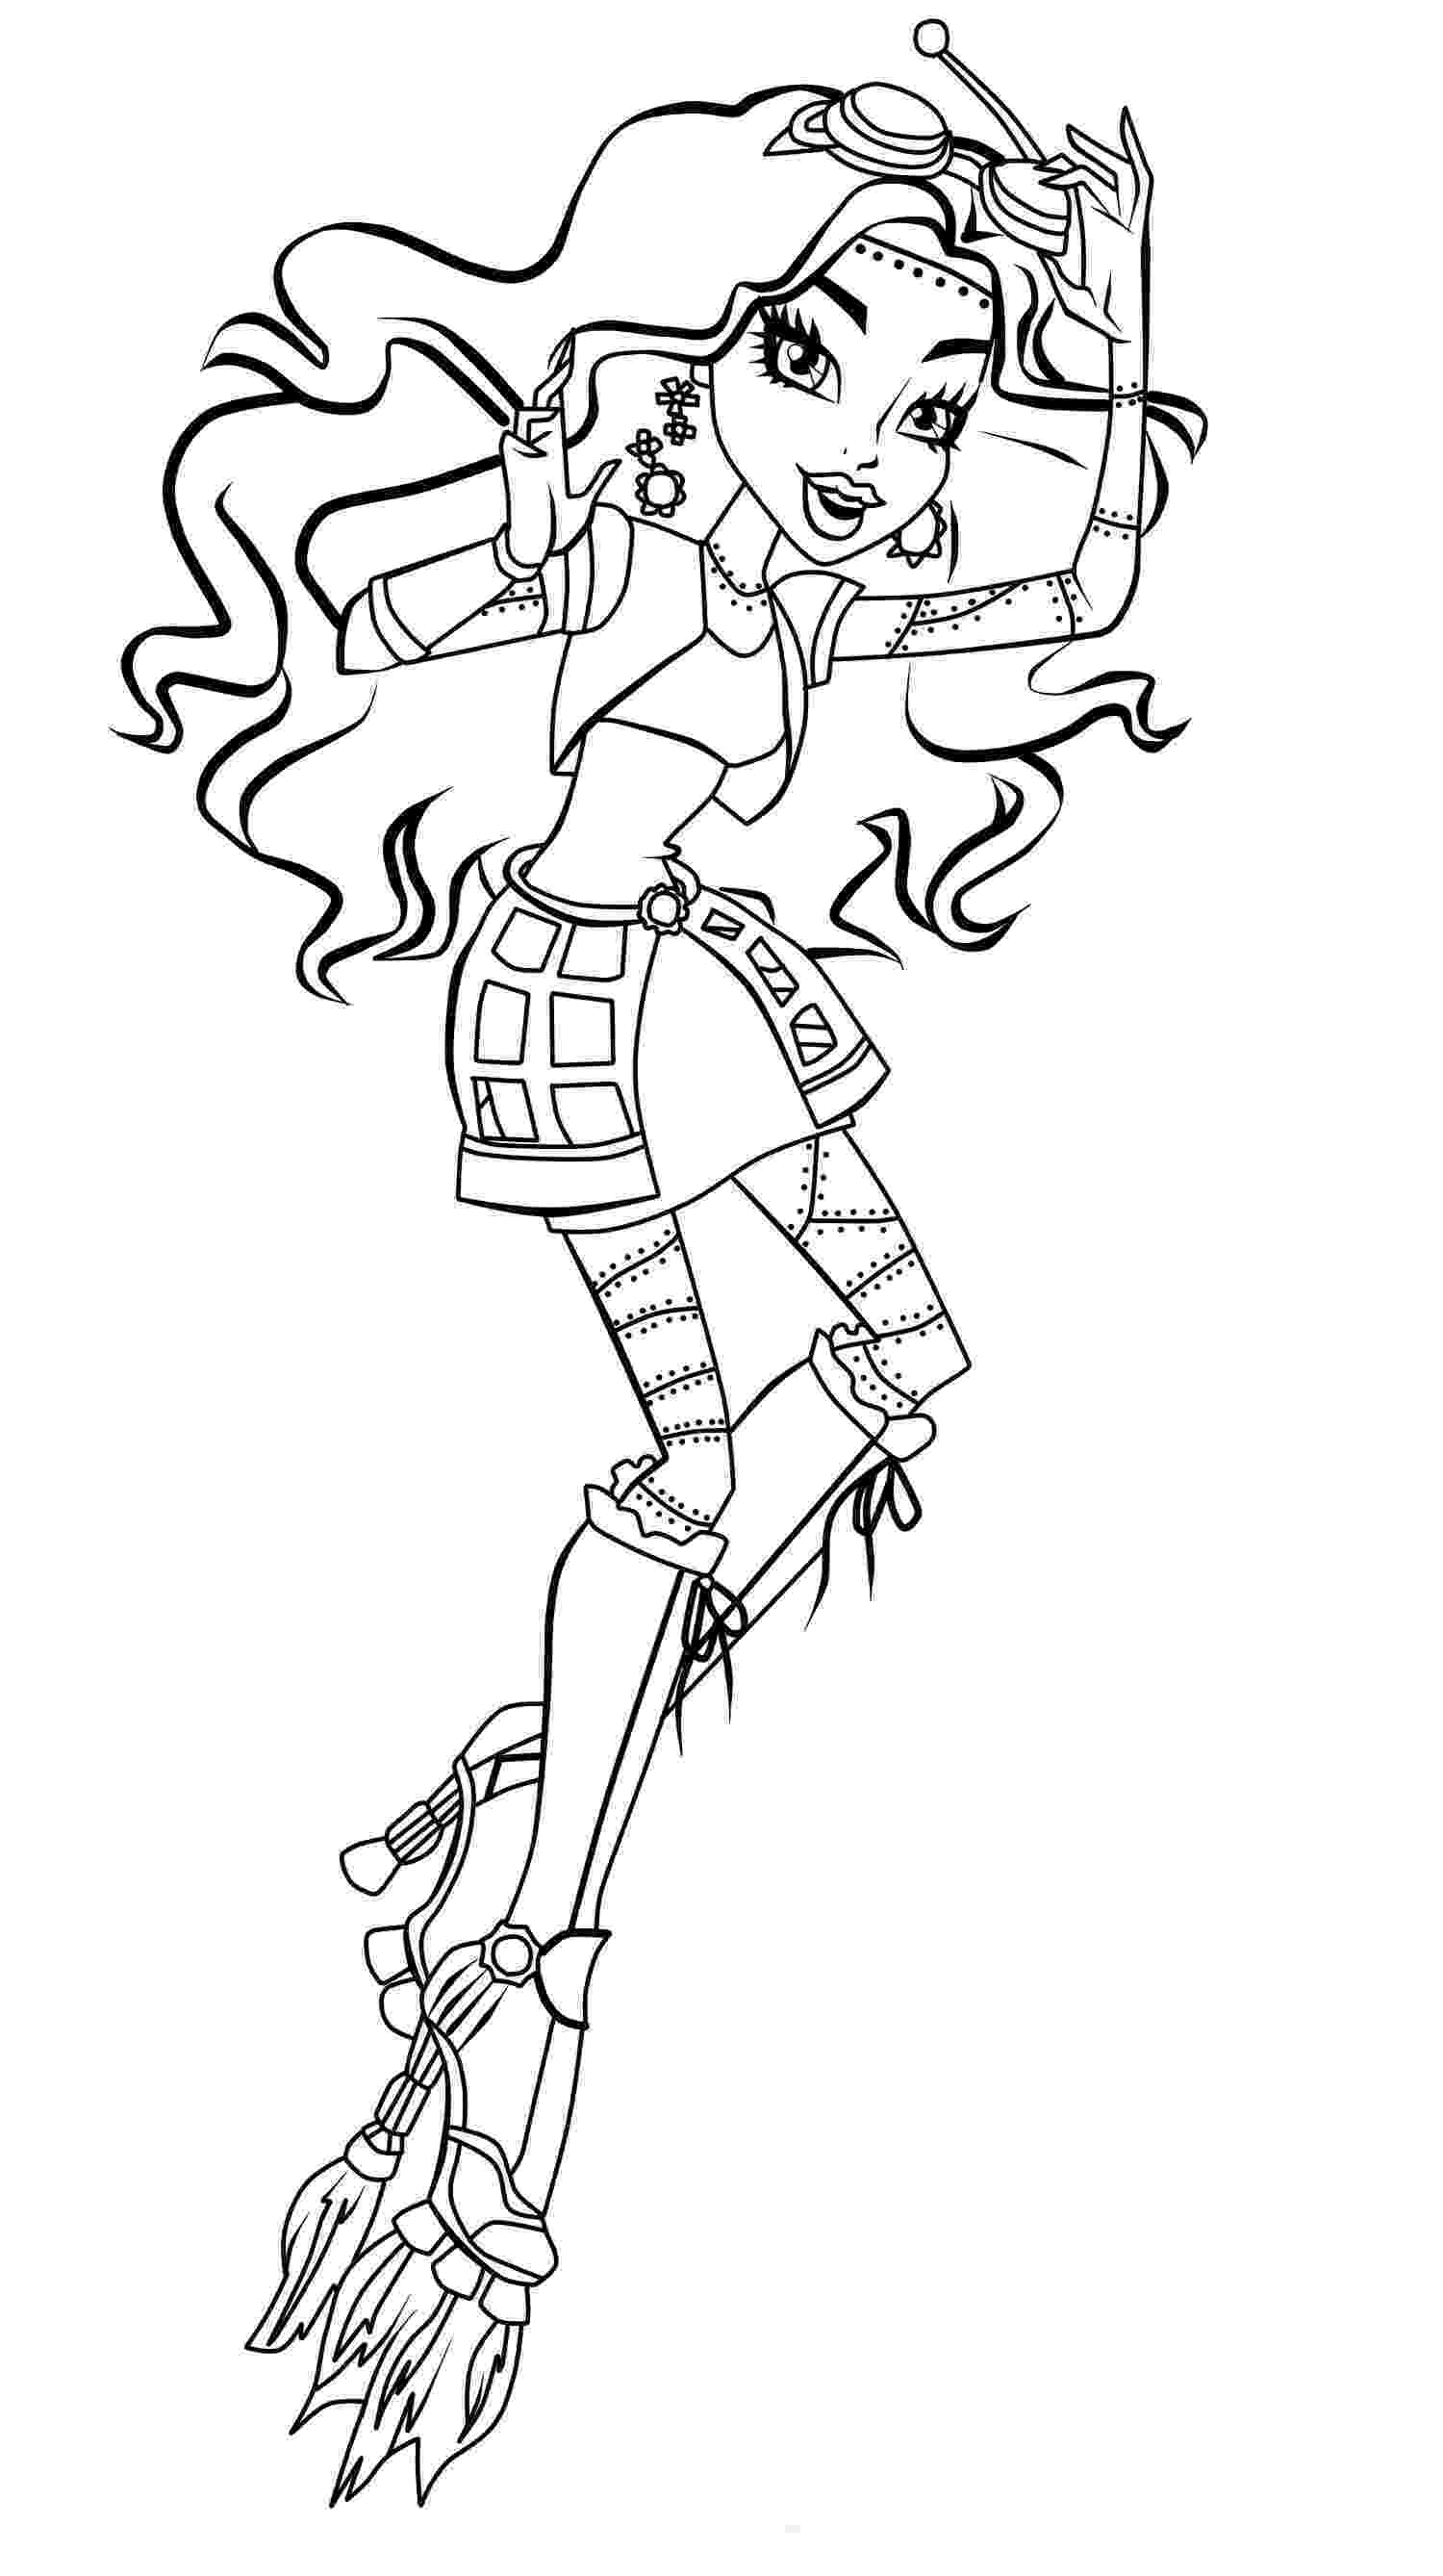 monster high coloring page monster high coloring pages getcoloringpagescom monster coloring high page